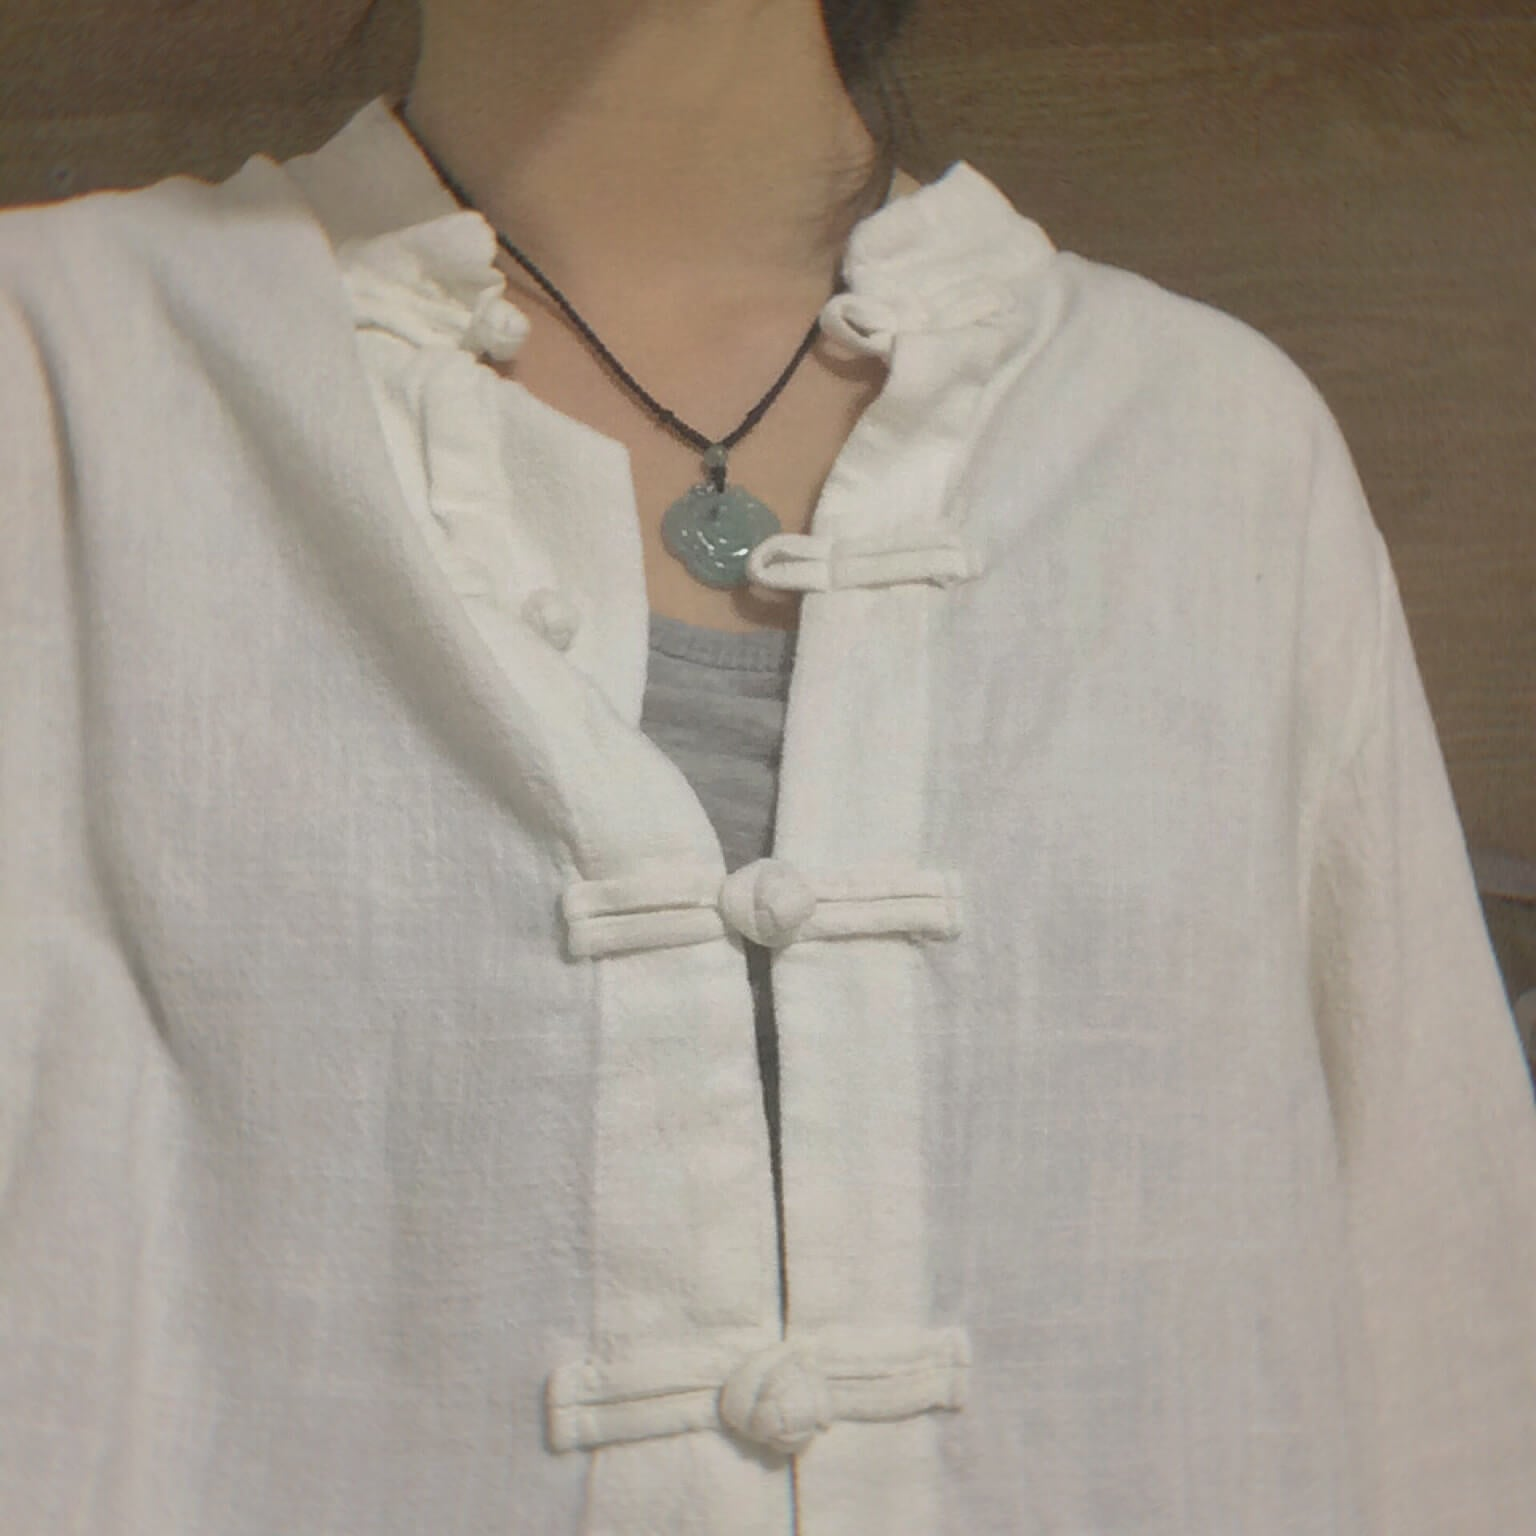 Liziqi shop clothing hanfu style classic Cotton and linen shirt white color detail environmentally friendly material